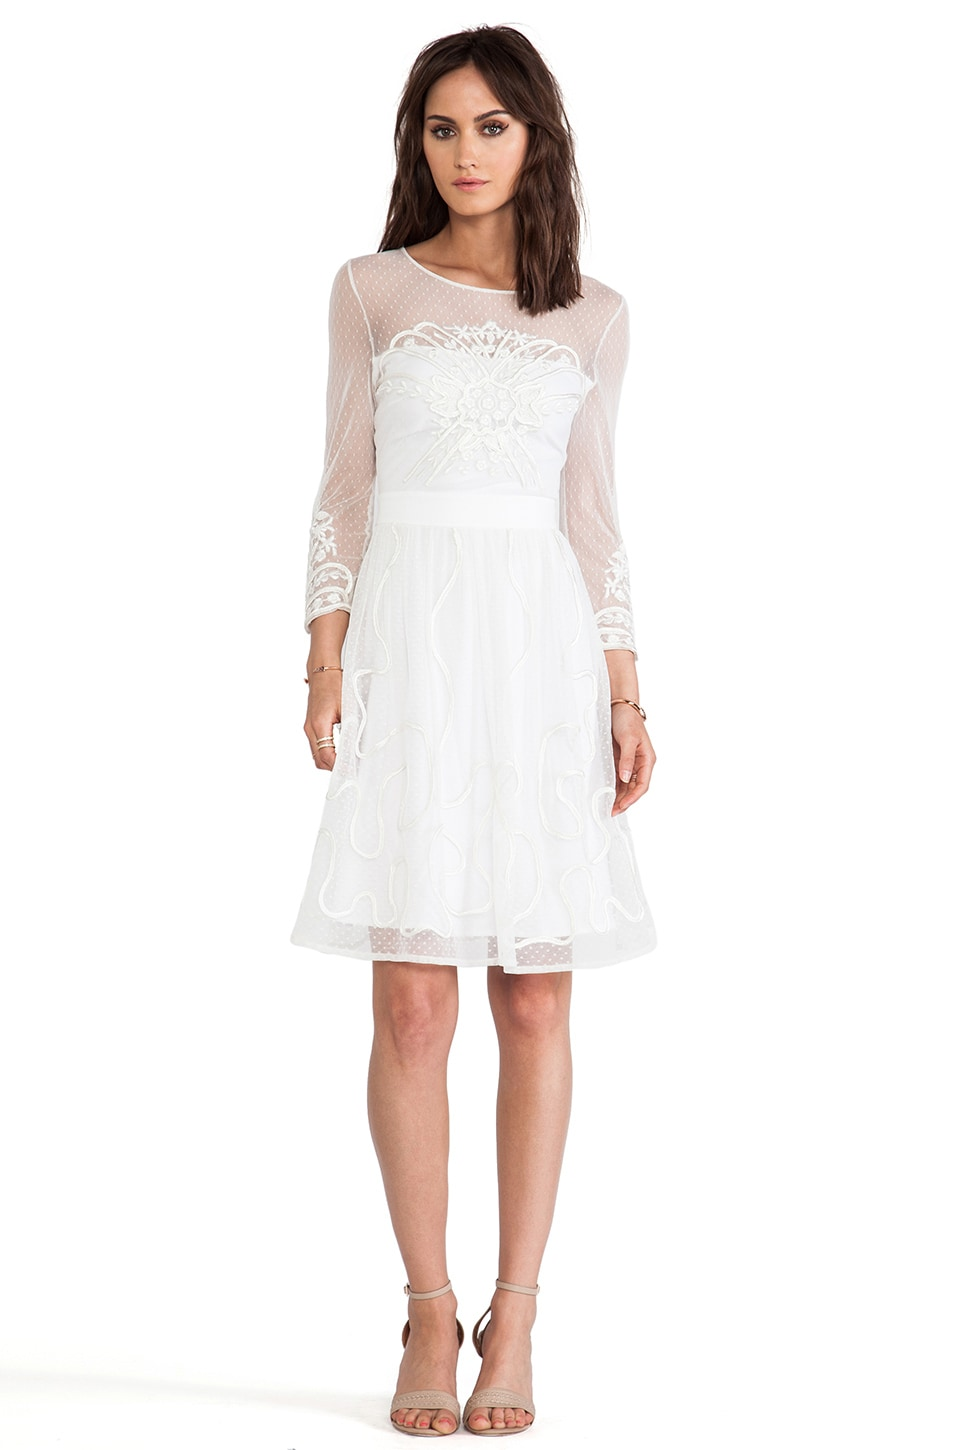 Alice by Temperley Mini Ezra Dress in Ivory